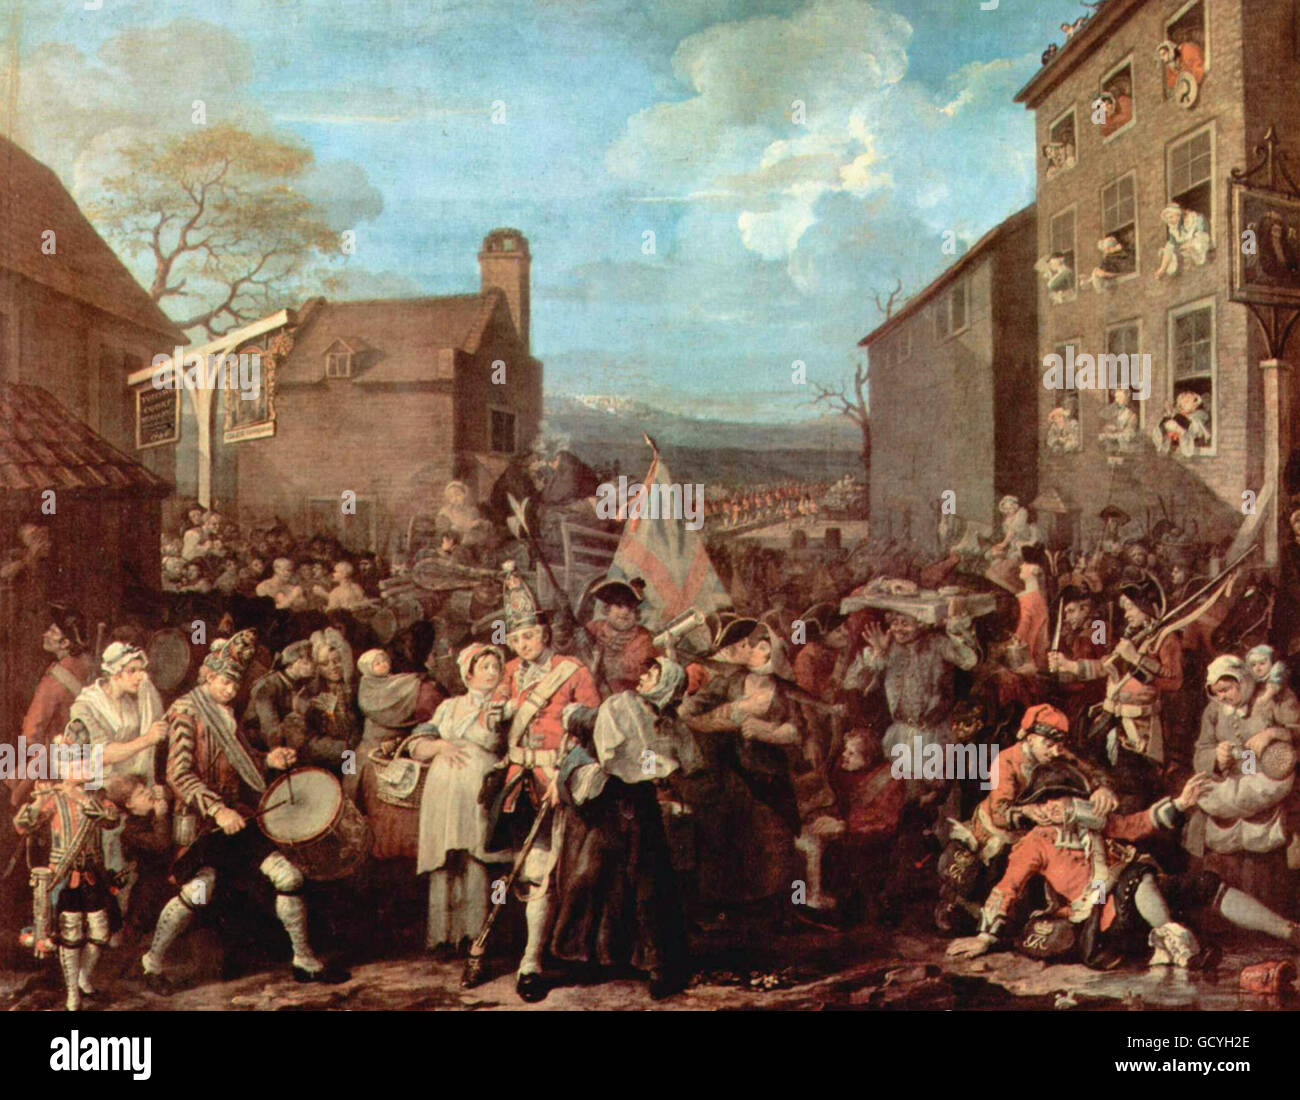 The March of the Guards to Finchley - William Hogarth - circa 1750 - Stock Image